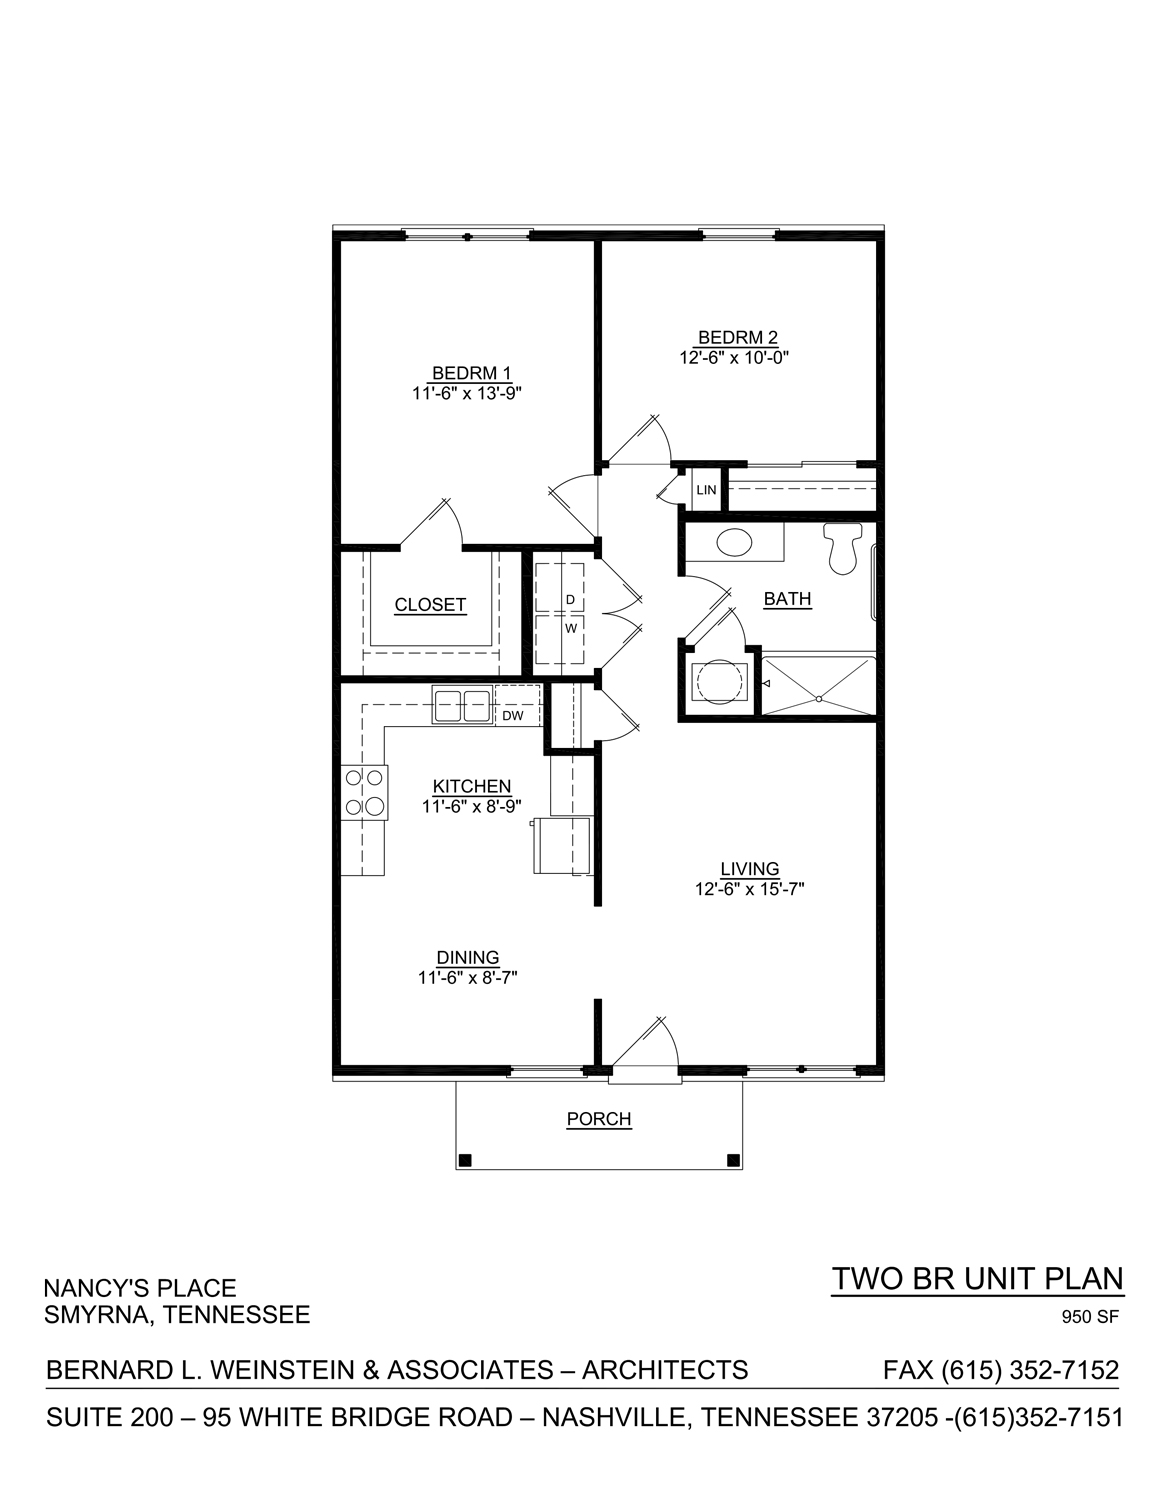 two bedroom nancy's place layout